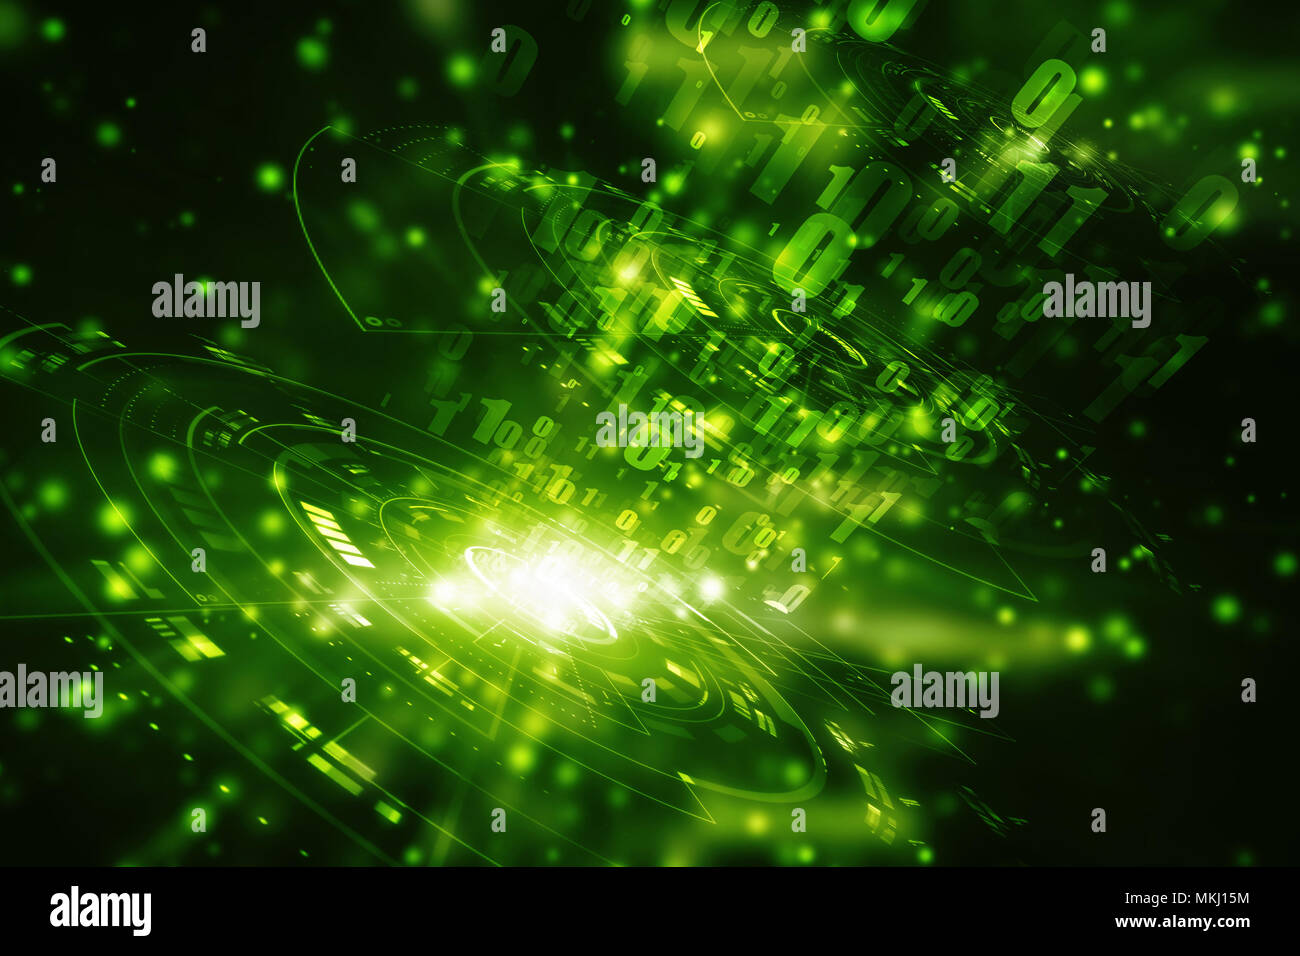 Digital Abstract technology background, Binary Background, futuristic background, cyberspace Concept - Stock Image